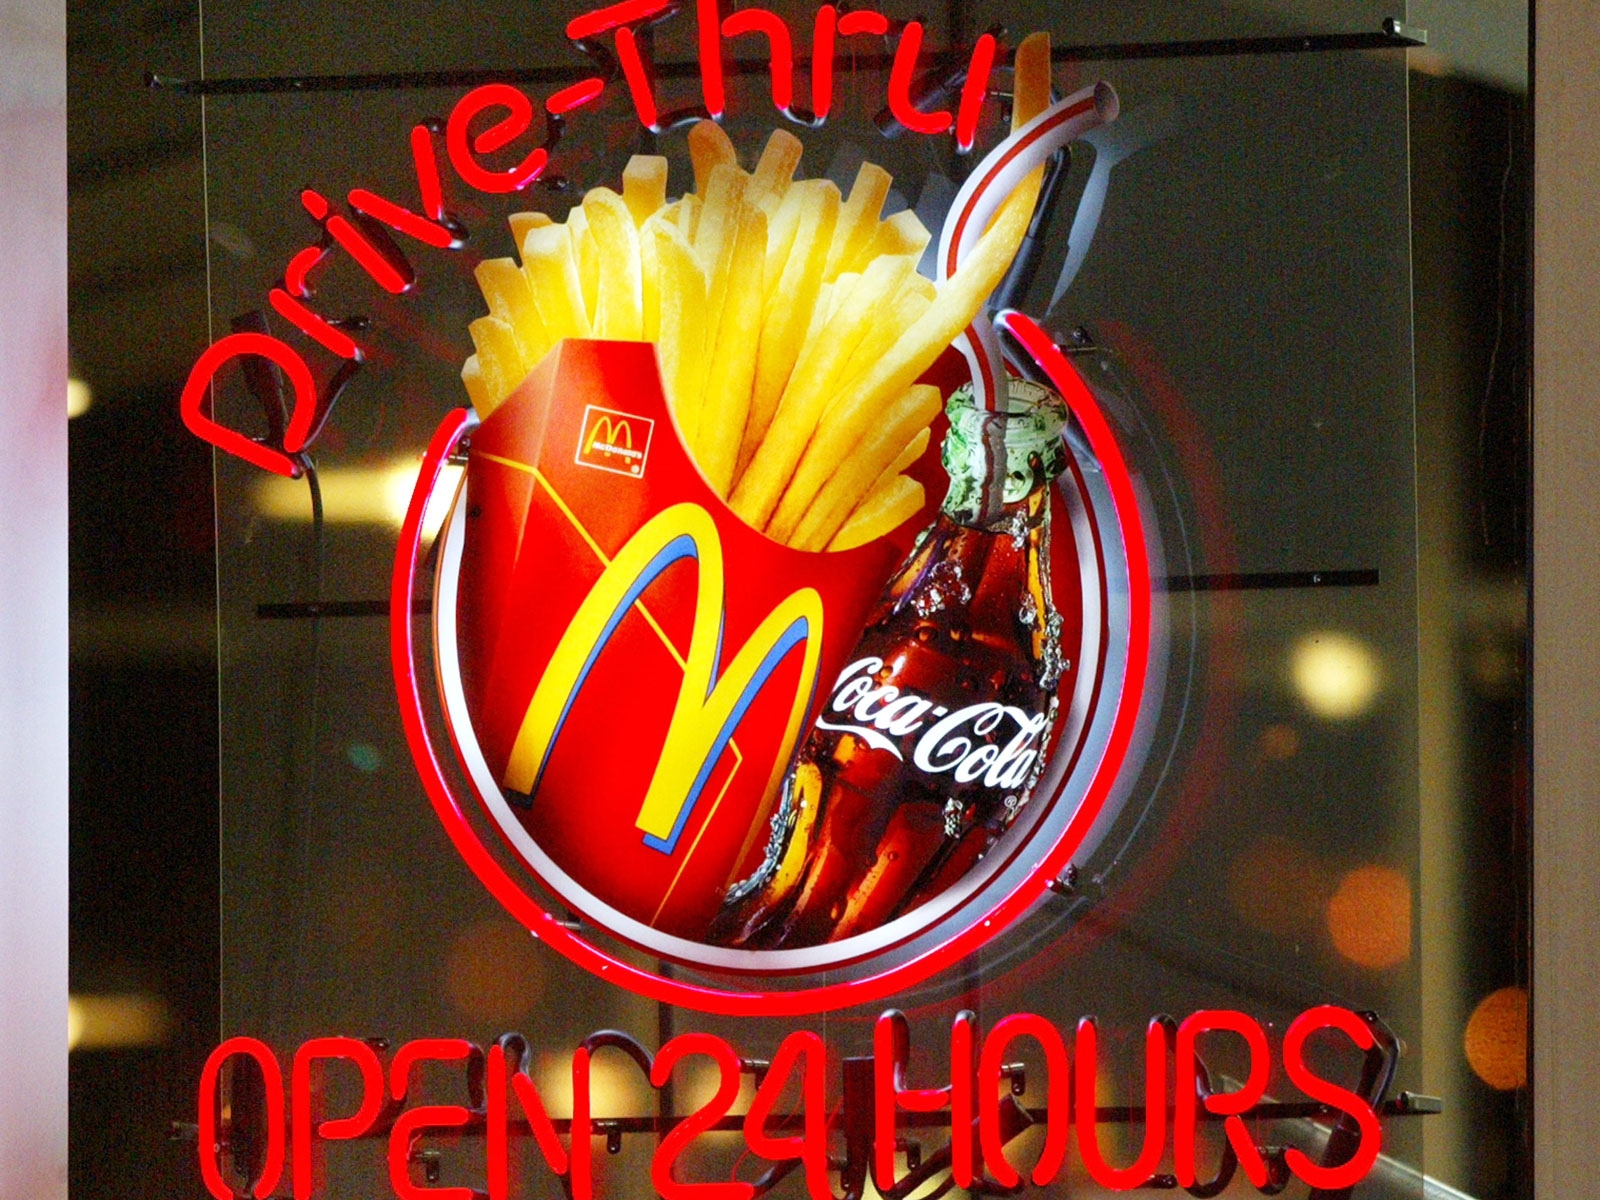 mcdonalds-late-night-menu-FT-BLOG0419.jpg